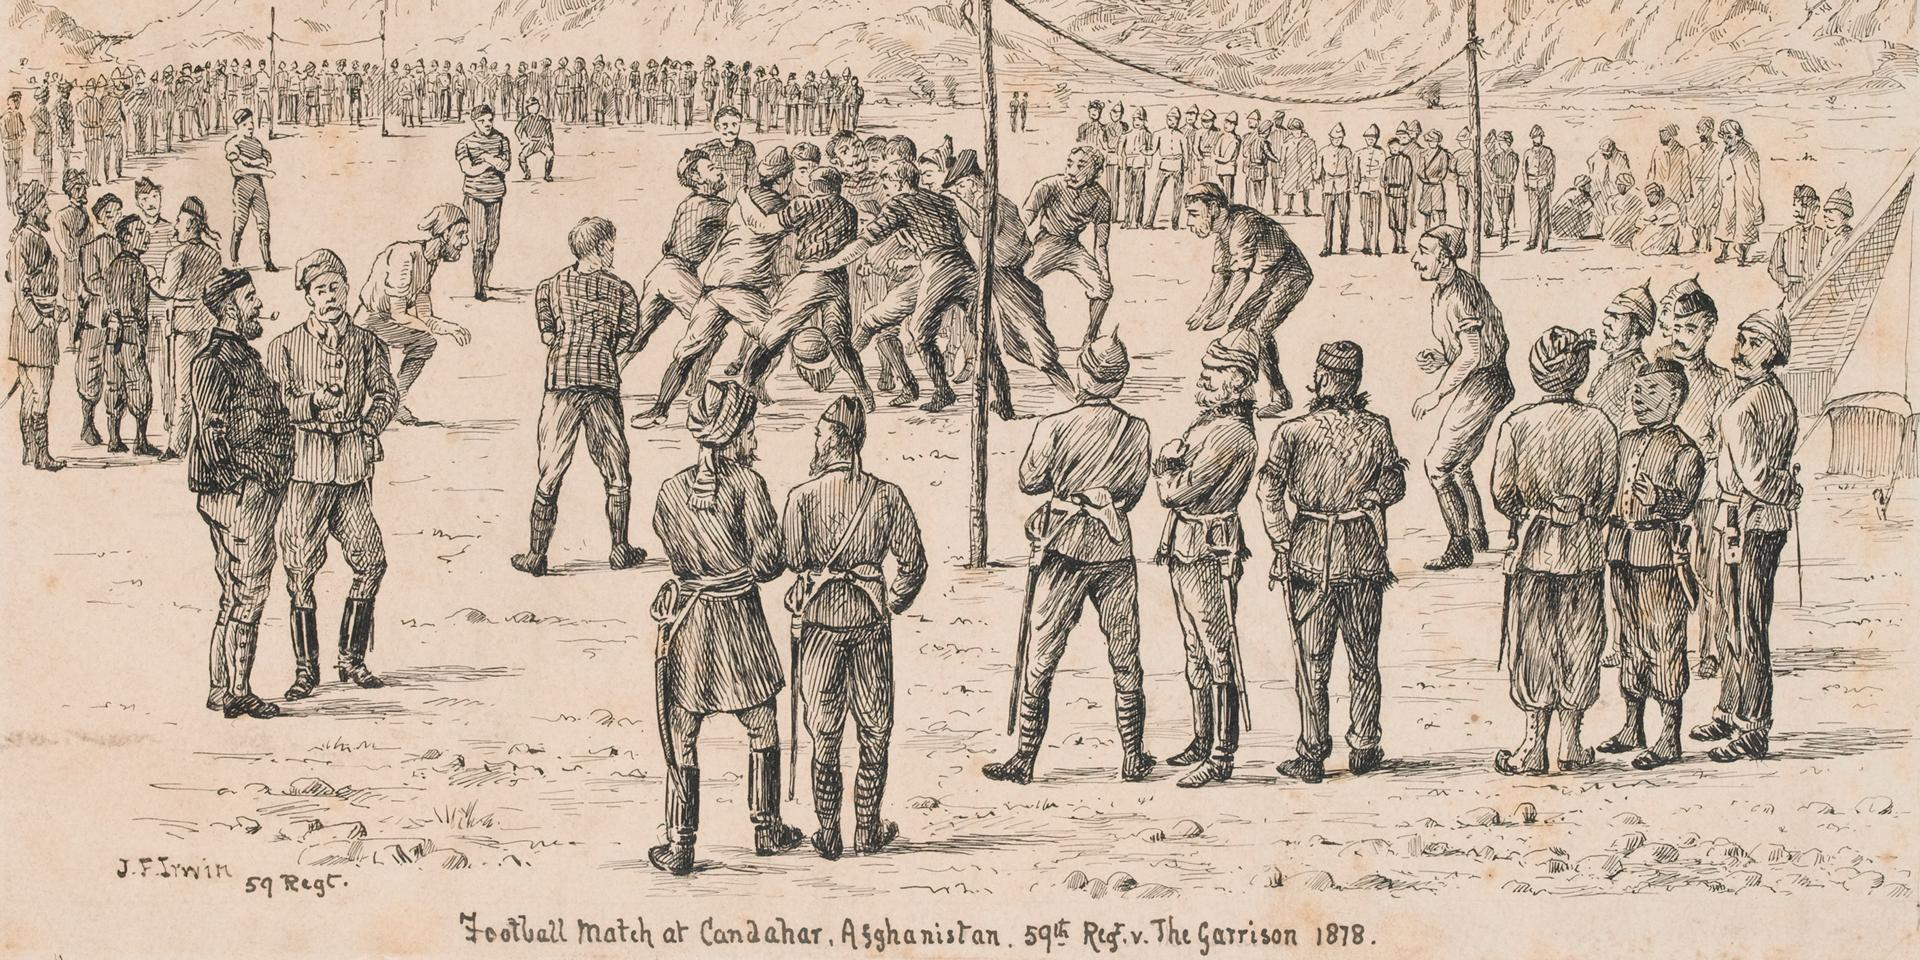 Sketch of 'first game of football ever played in Afghanistan' by Major John Irwin, 1878